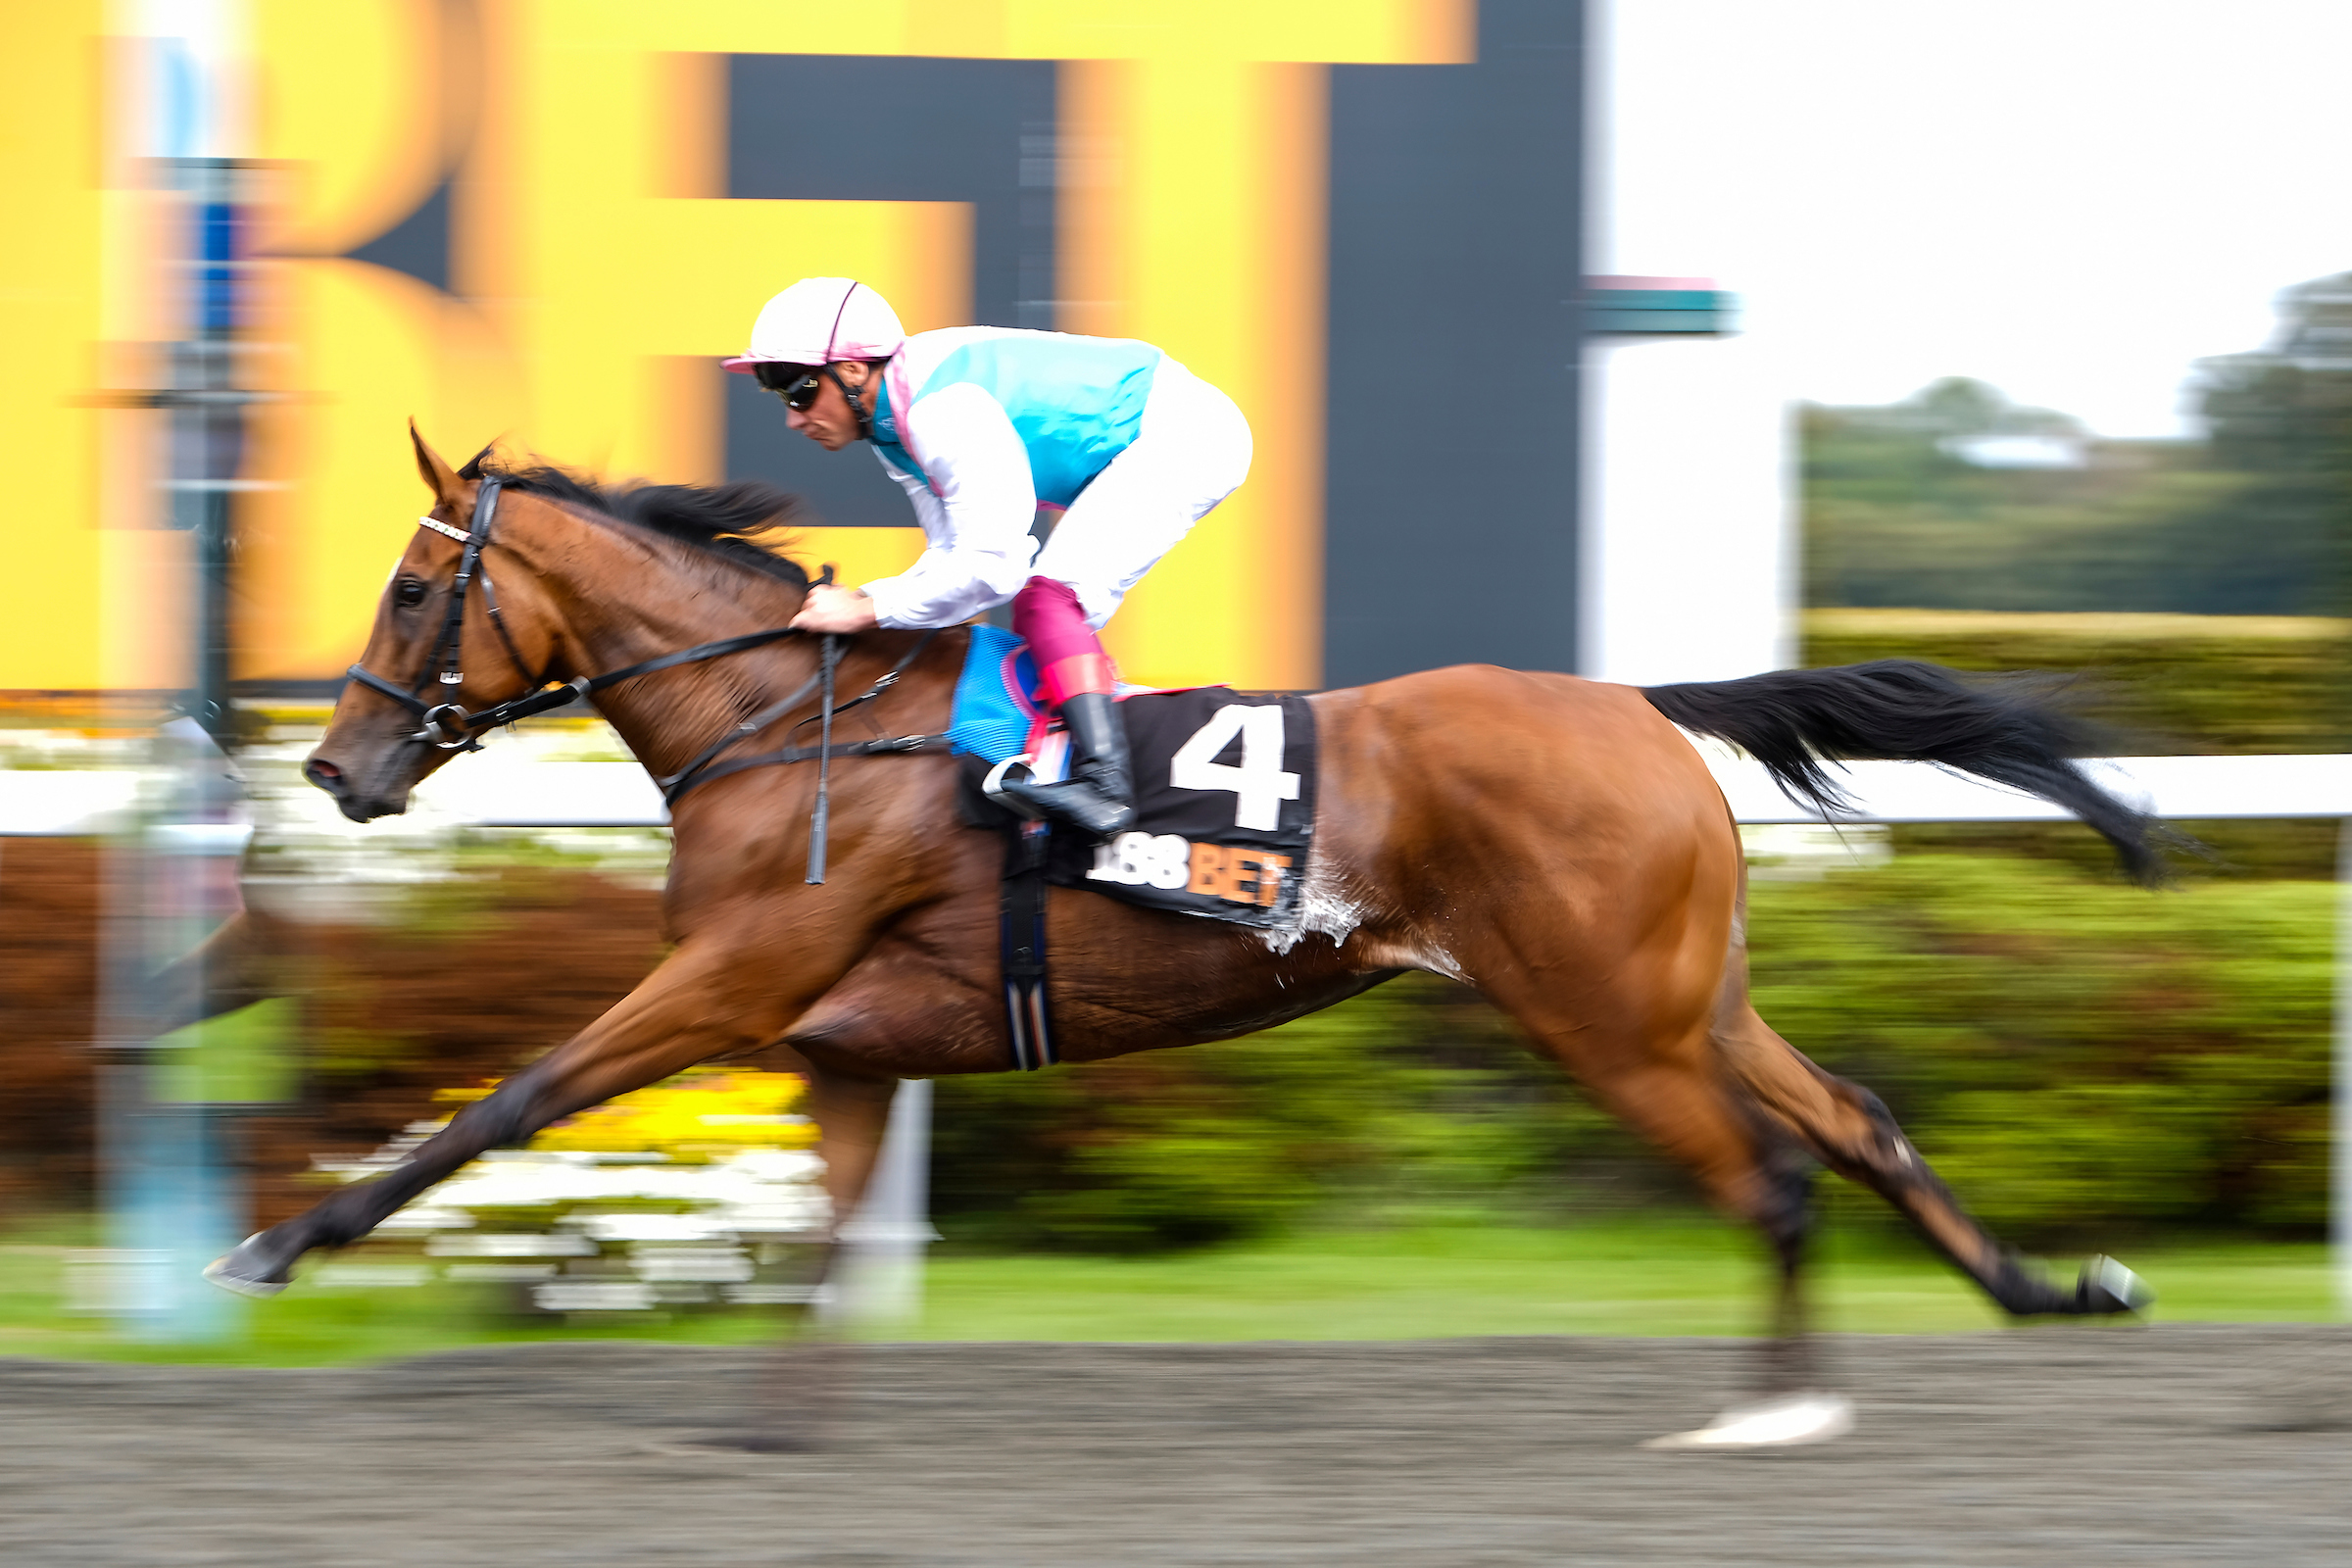 Blurred vision: Enable won in 2m.30.57s (FocusOnRacing)